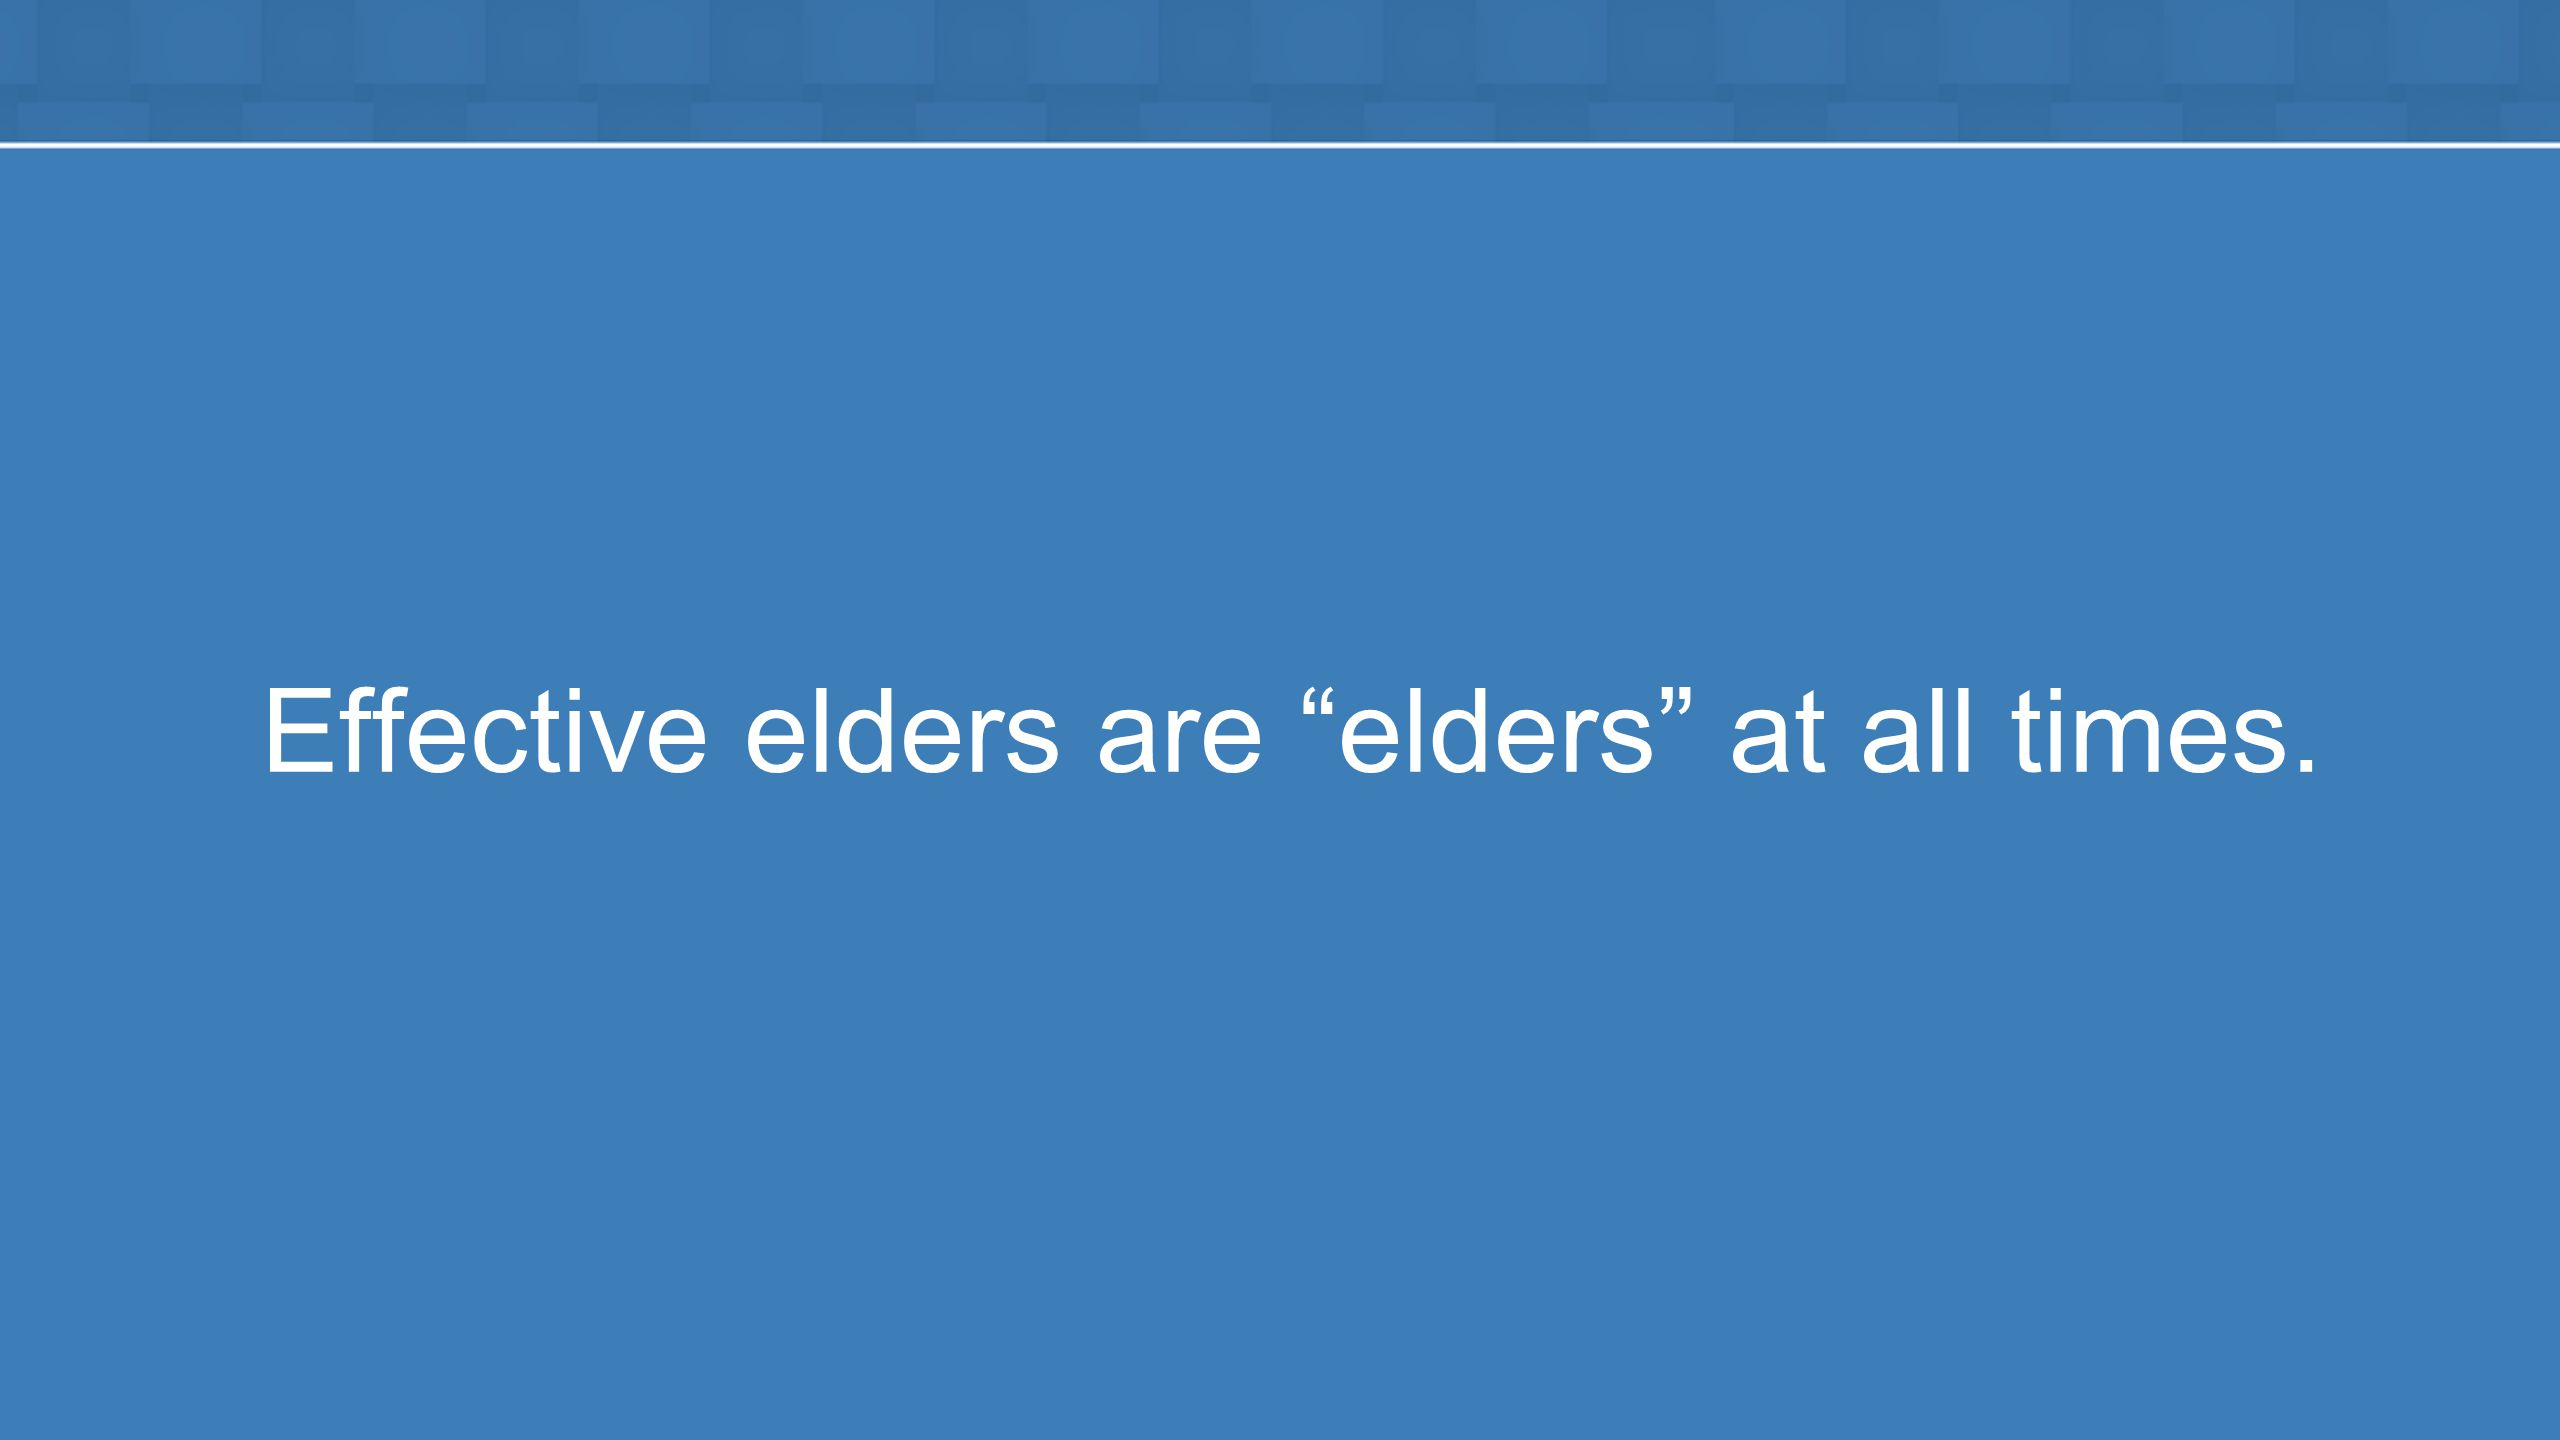 Effective elders are elders at all times.